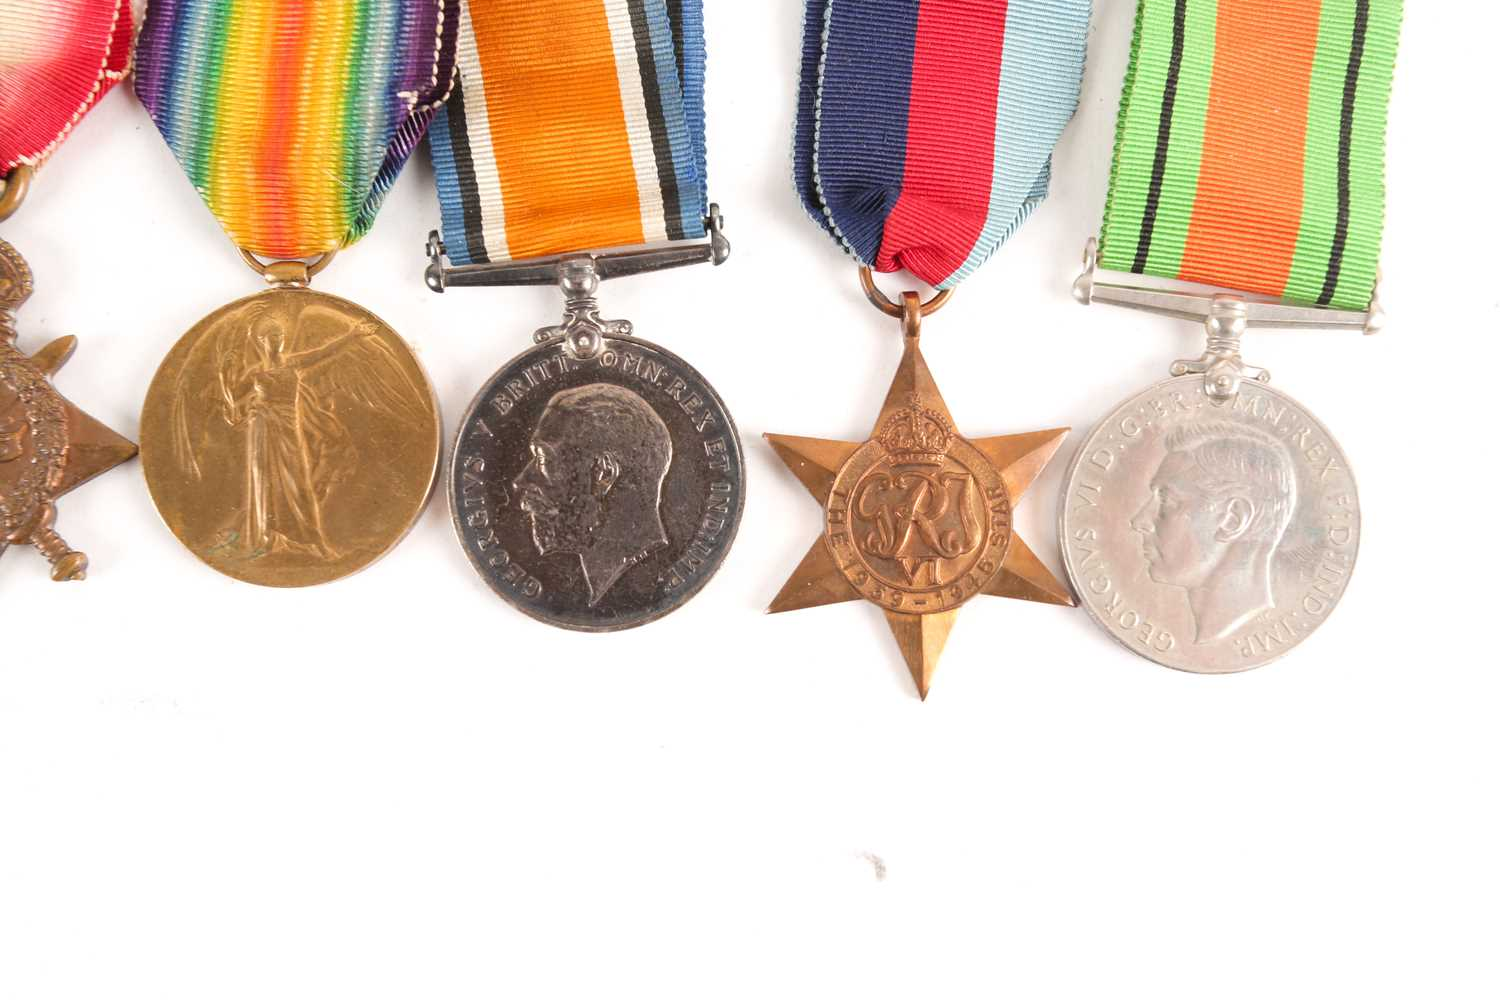 A WWI Campaign, Victory Medal and 1914-1918 Star, to G-4982 PTE. J.R. Pont, Royal Sussex Regiment, - Image 6 of 10